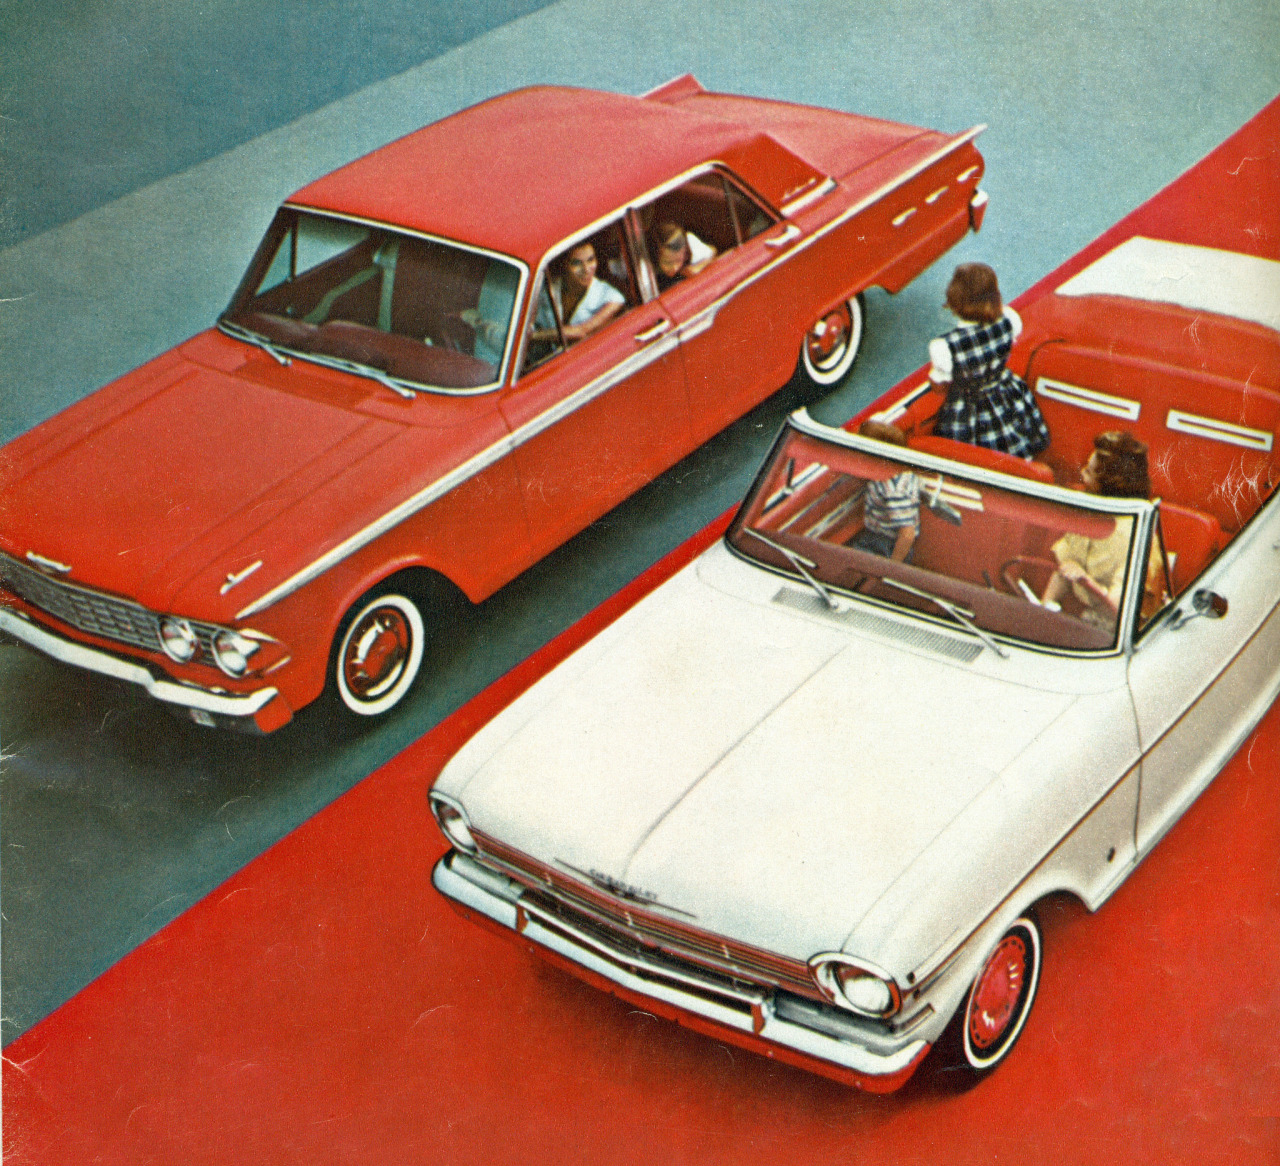 1962 Ford Fairlane Coupe and Chevrolet Chevy II Convertible